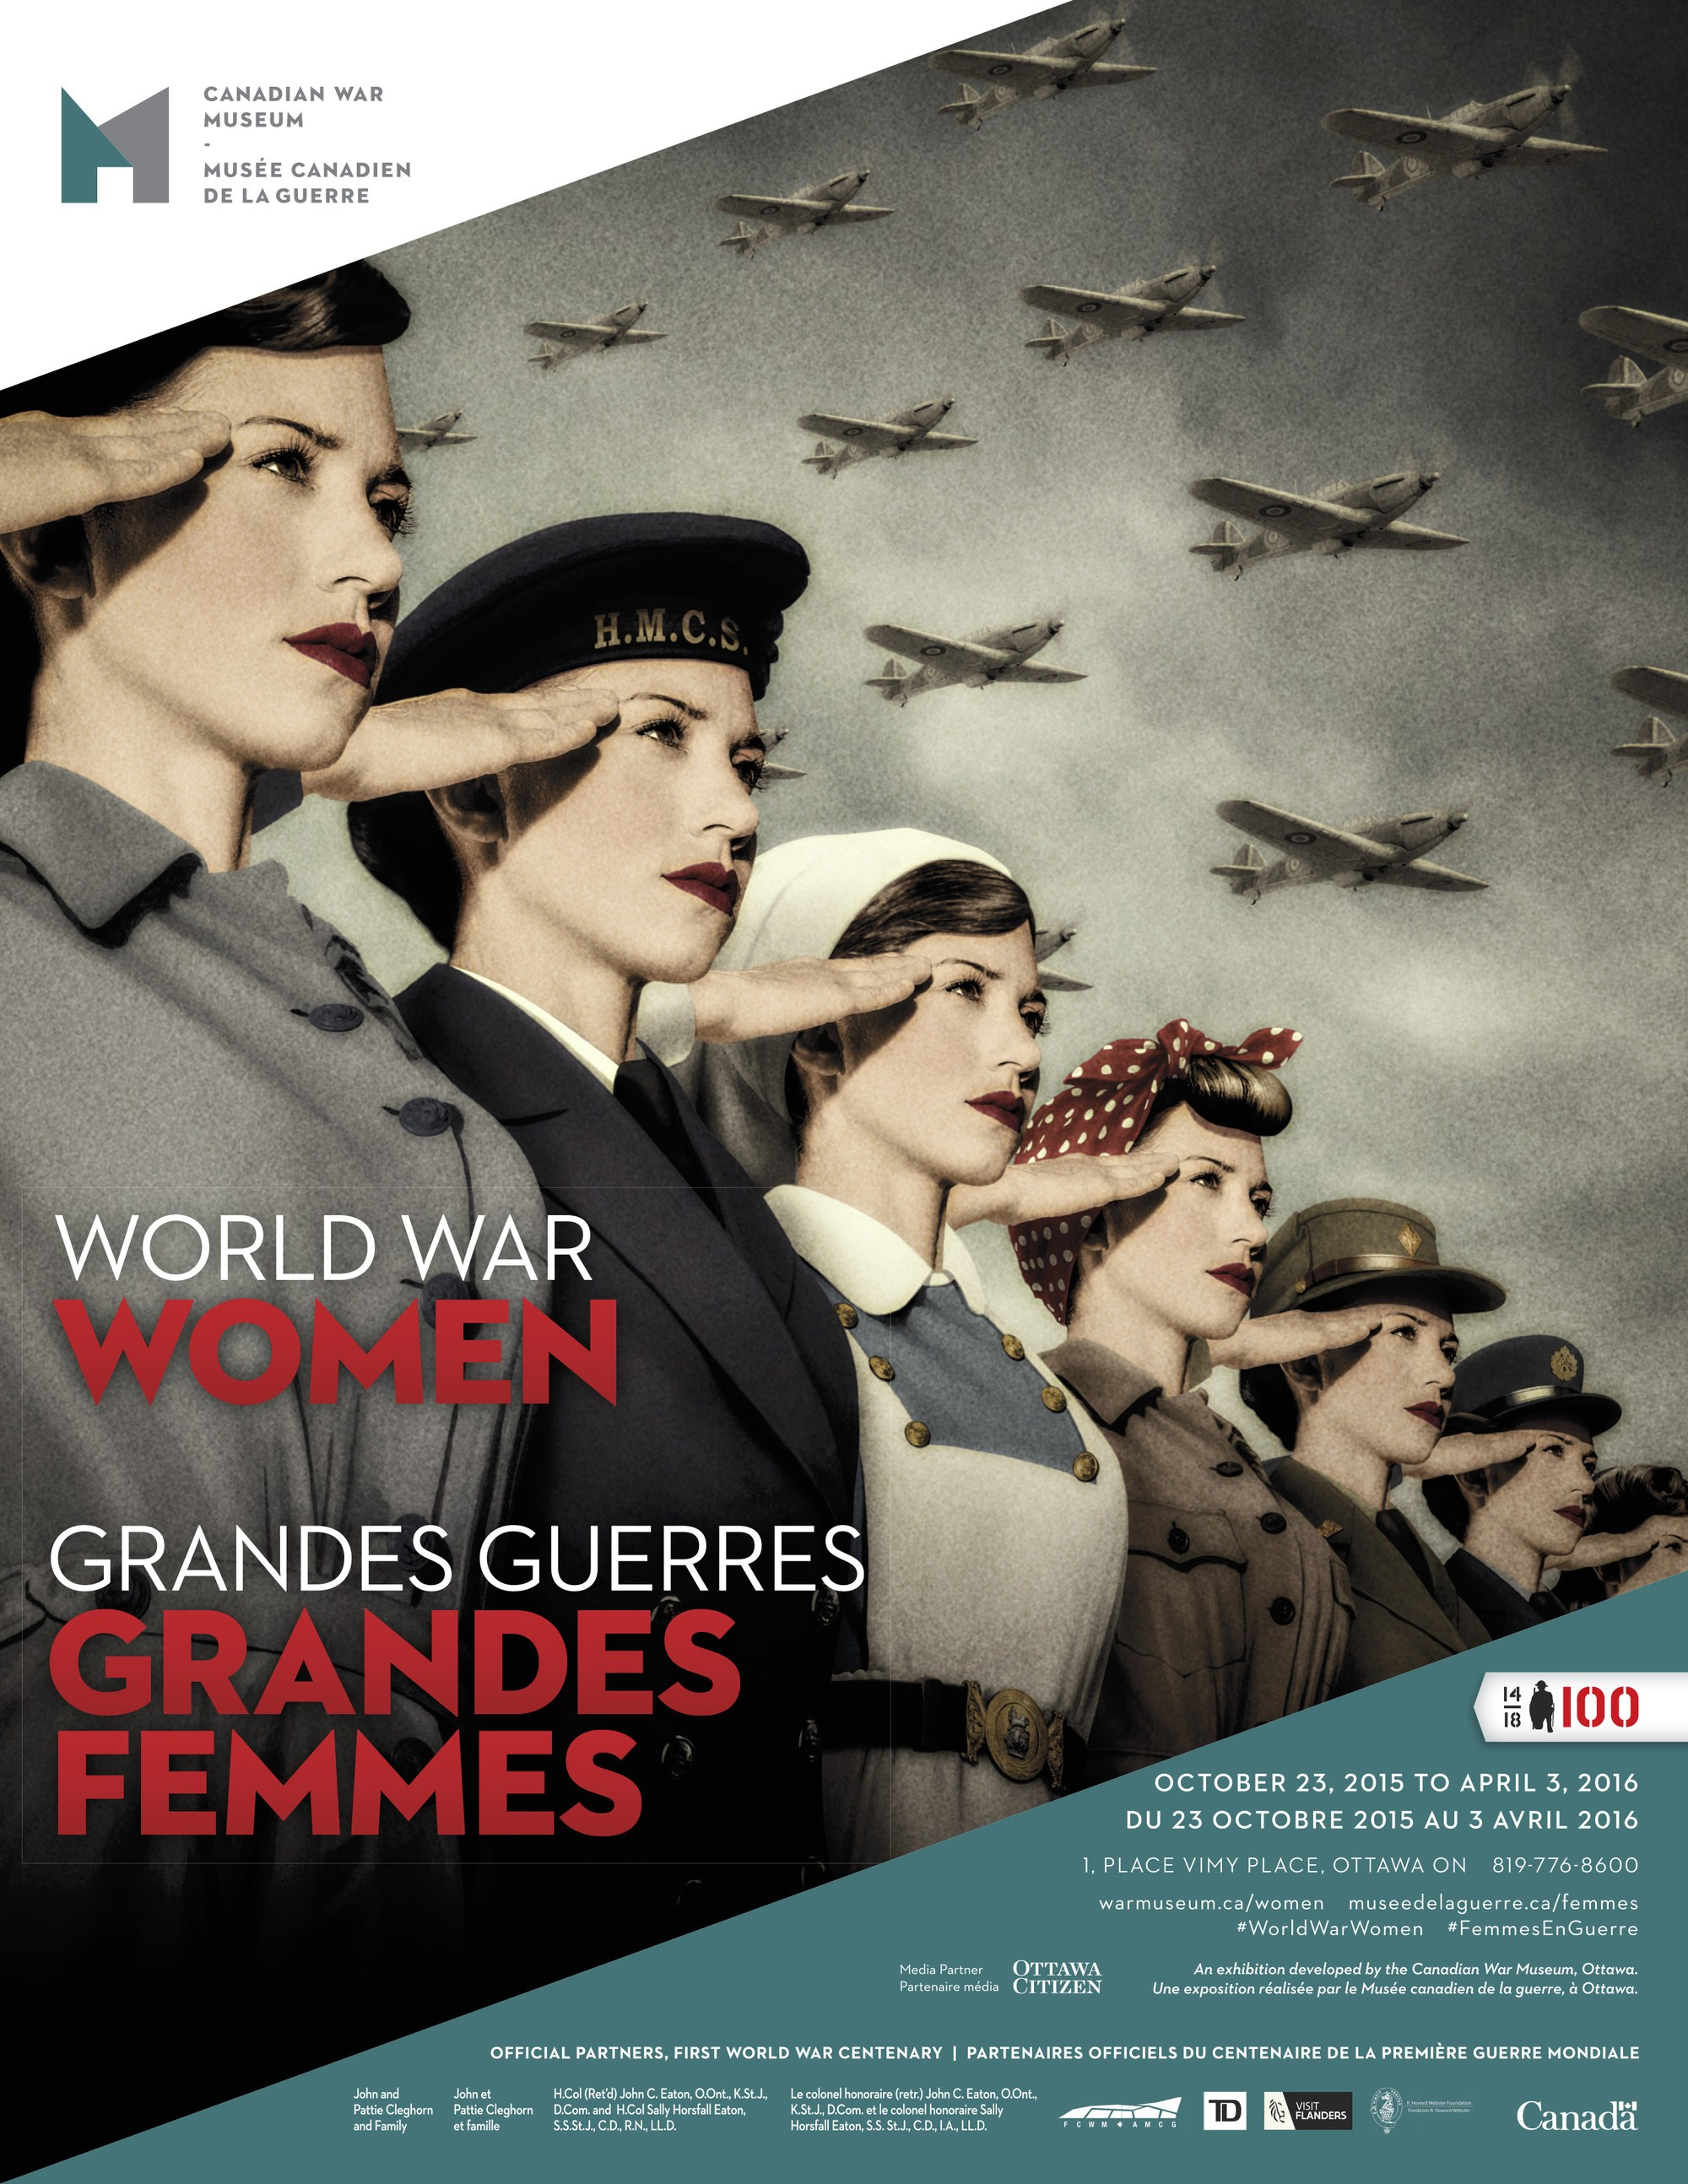 canadian women and the second world Canadian women and the second world war ruth roach pierson's essay is written with purely the perspective of women in mind, and the article itself is geared towards a female audience the writer briefly describes the conditions of canada at the onset of the war and the societal views of the role of women.